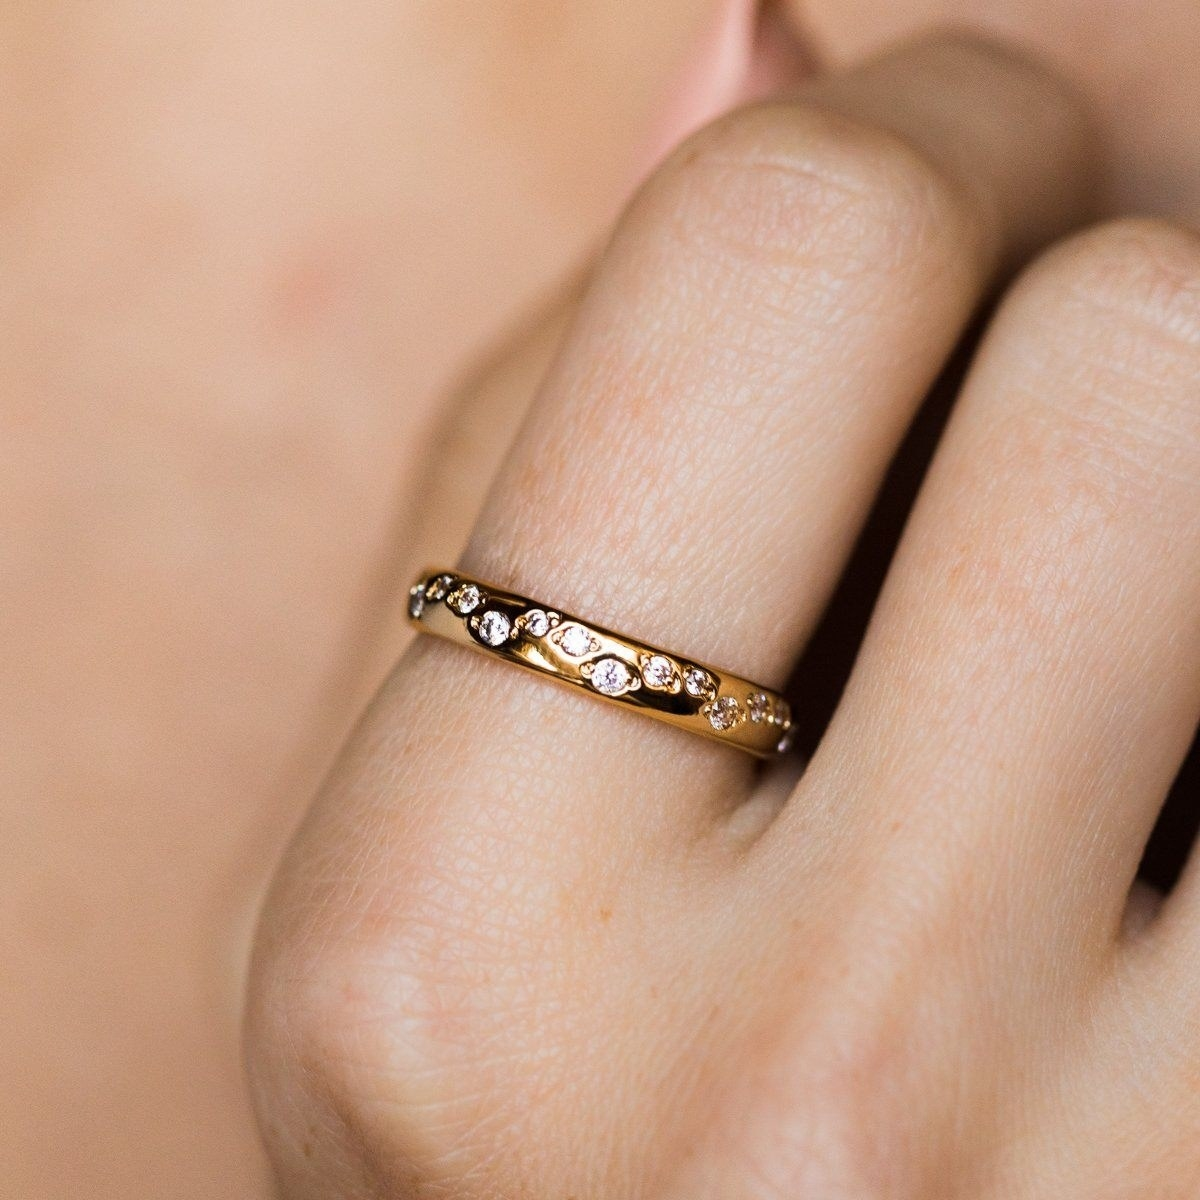 a gold band with sparkly stones throughout